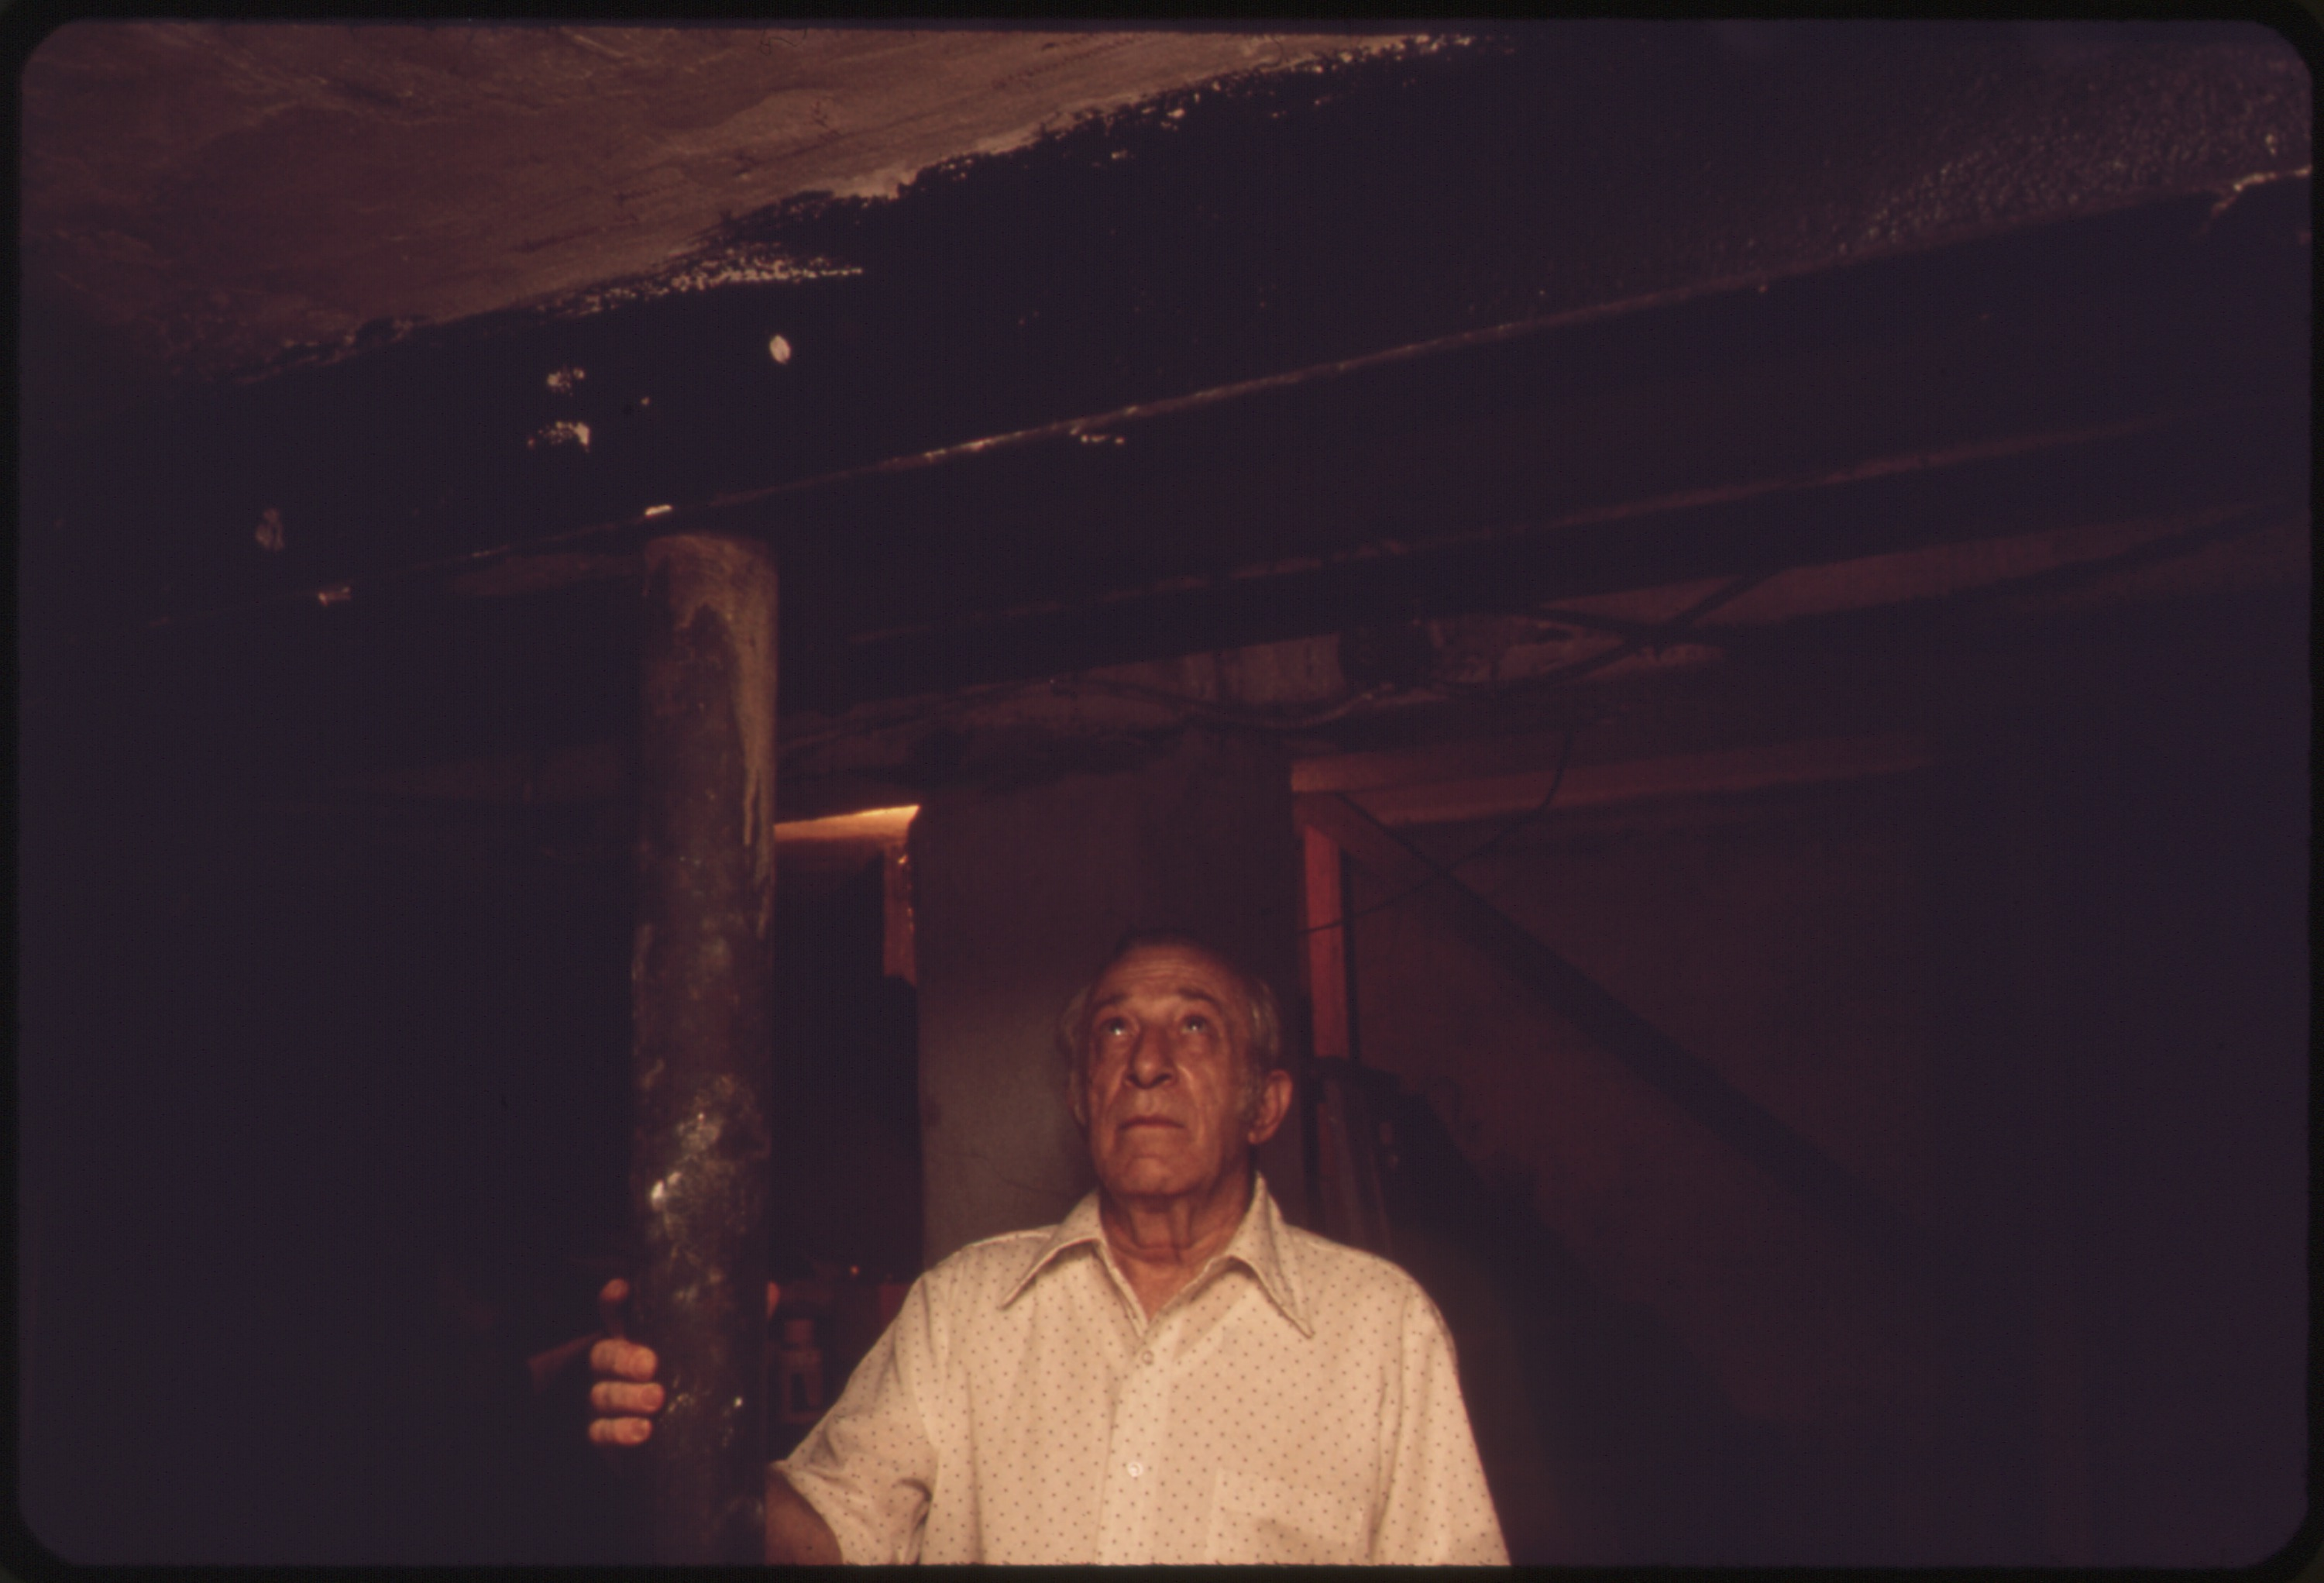 (12/02/1970 - ) Title BERNARD PICARELLO TOUCHES STEEL BEAM HE INSTALLED IN 1967 WHEN THE ORIGINAL 8X8 WOODEN BEAM (SHOWN BEHIND HIM) BEGAN TO CRACK. THE PICARELLO